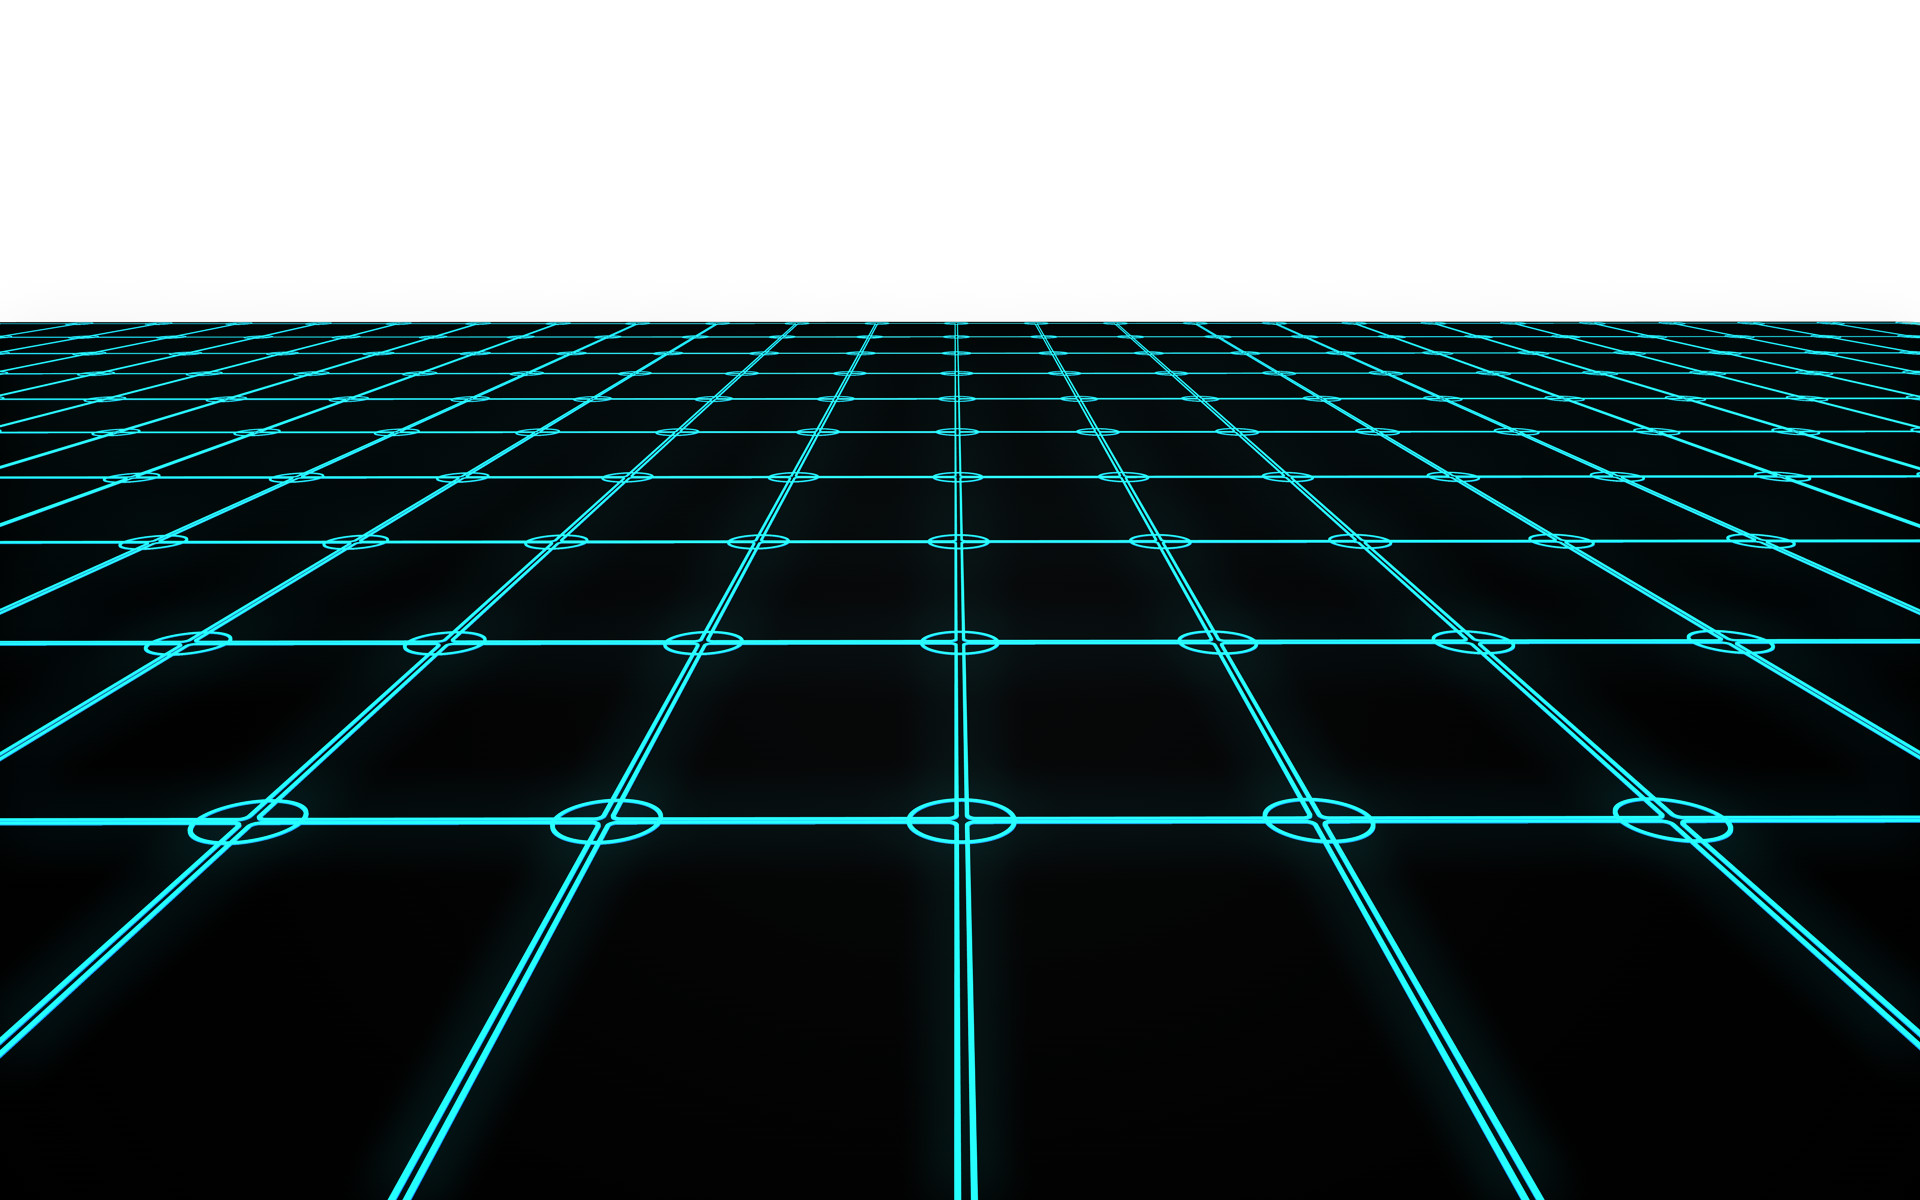 Another Tron Type Floor by Taz09 on DeviantArt